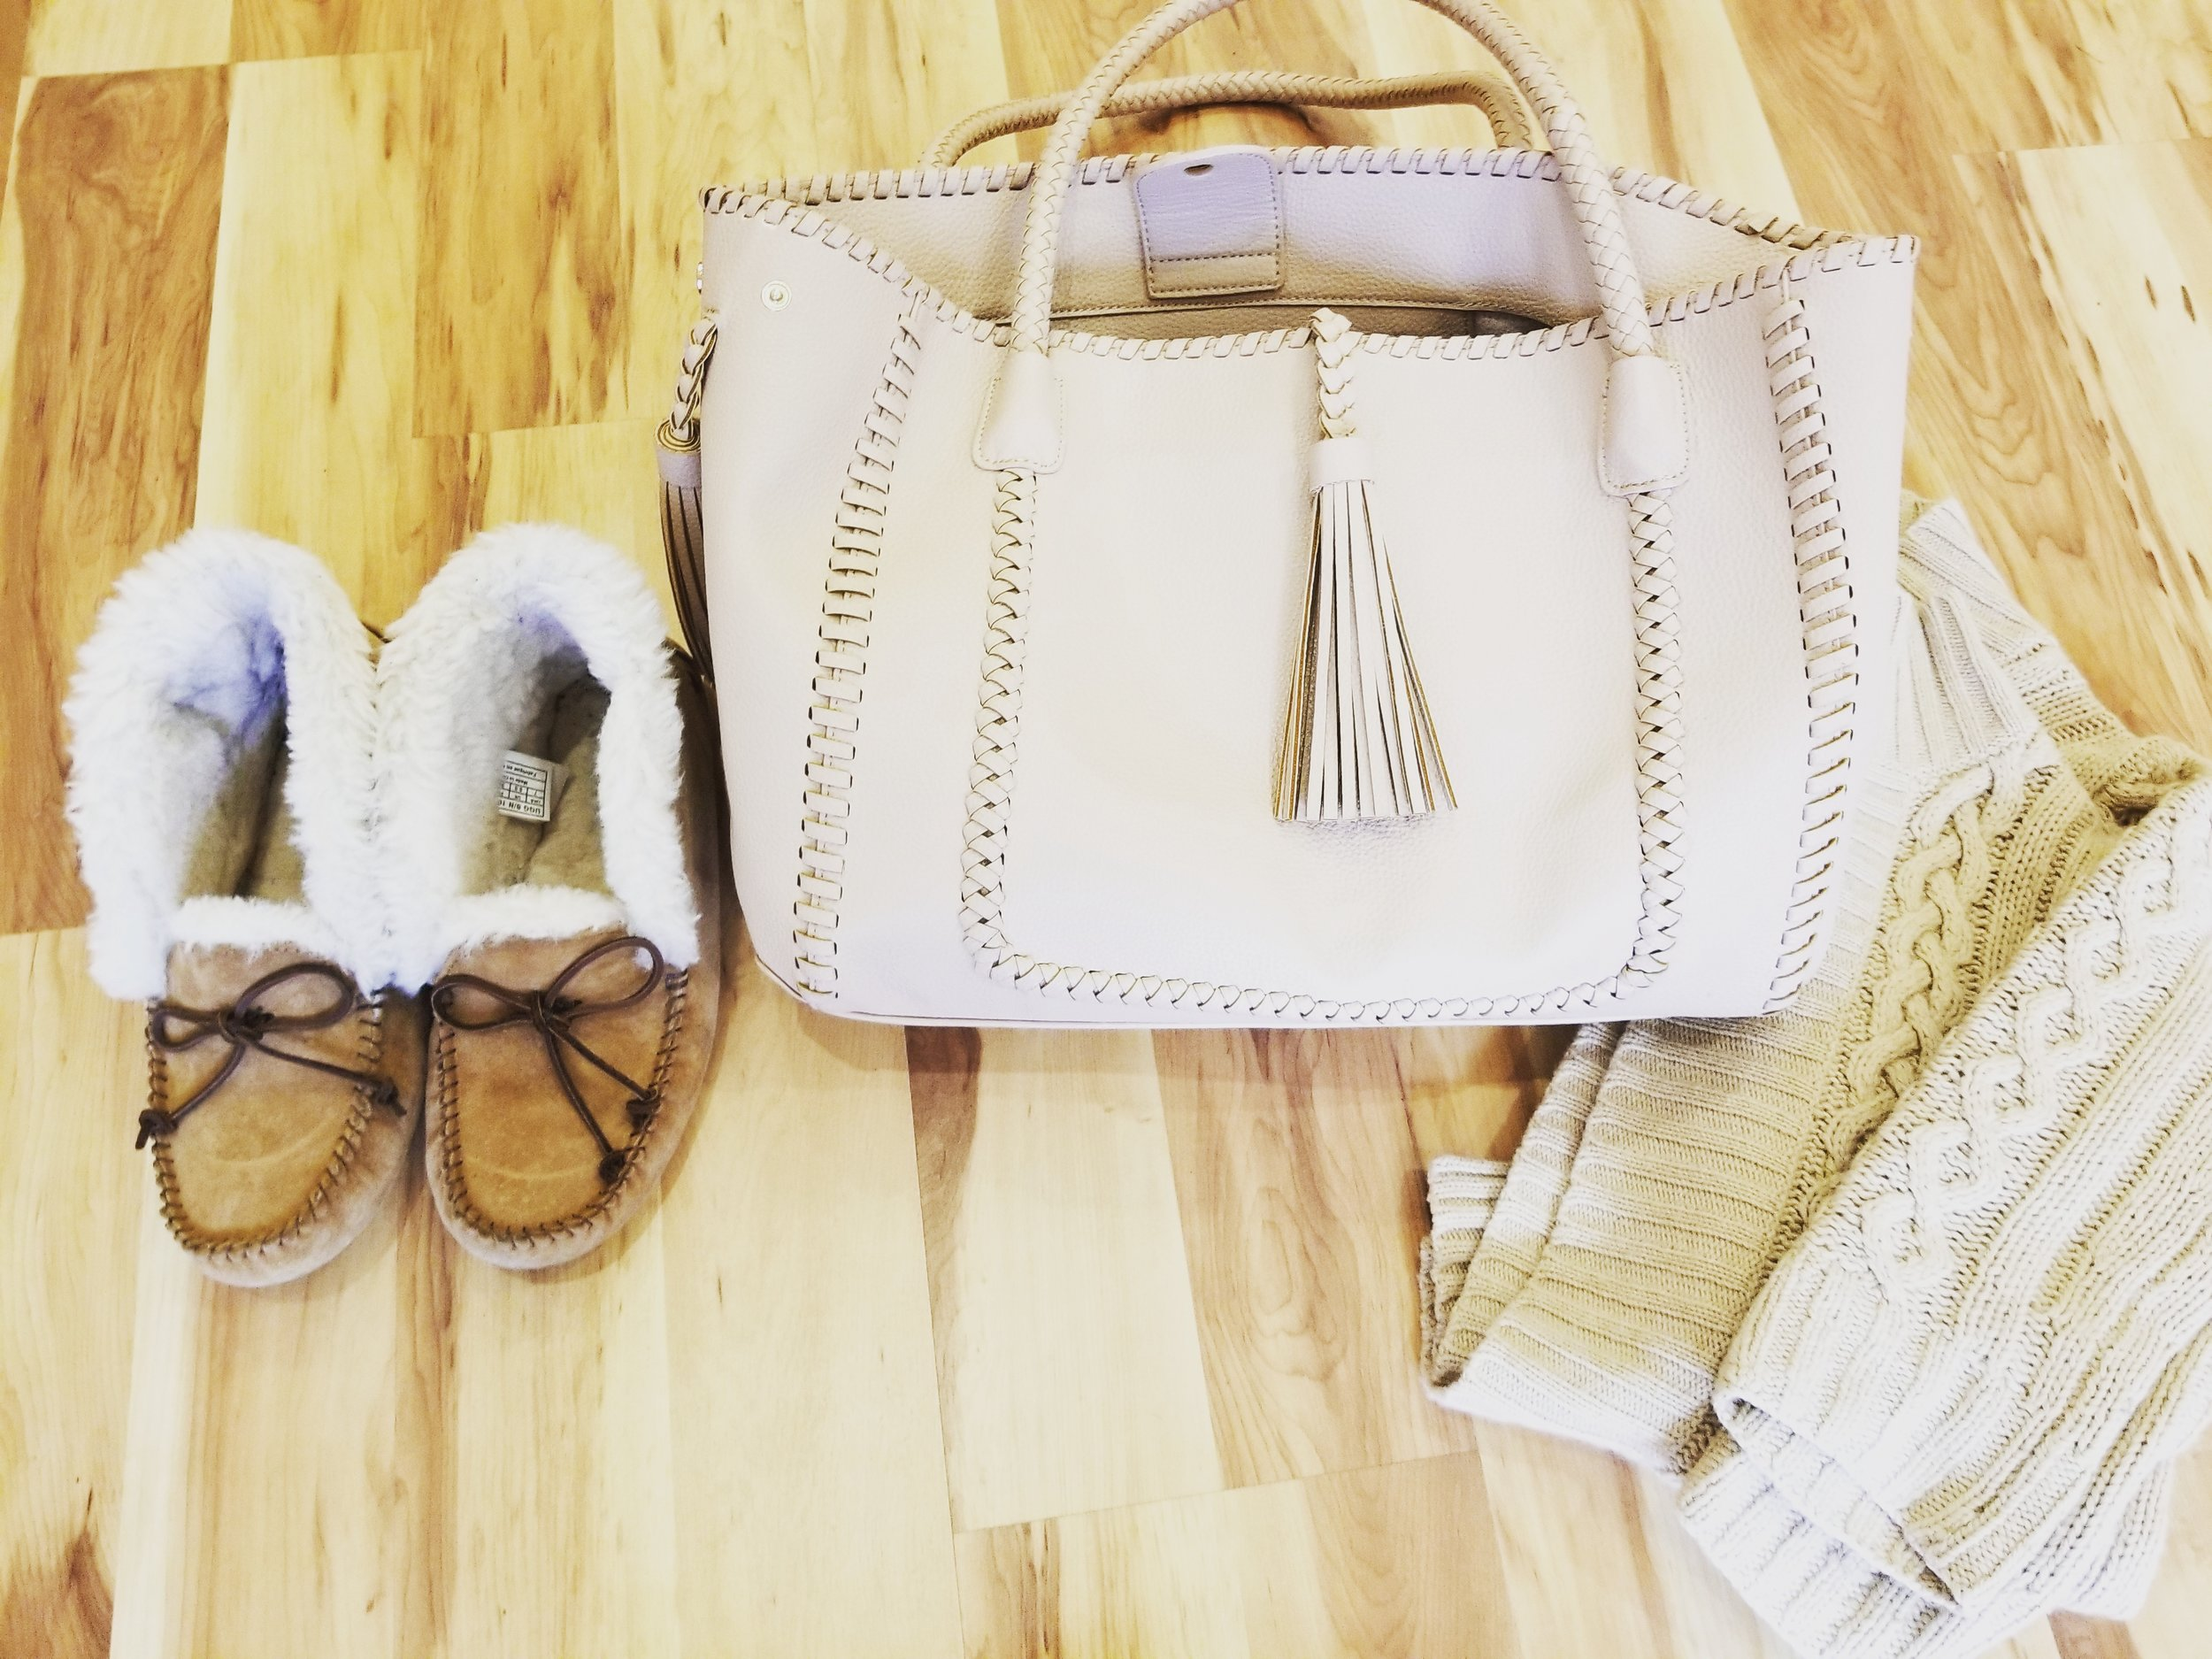 Recently I have been obsessed with neutral palette - beige, light, pale pink